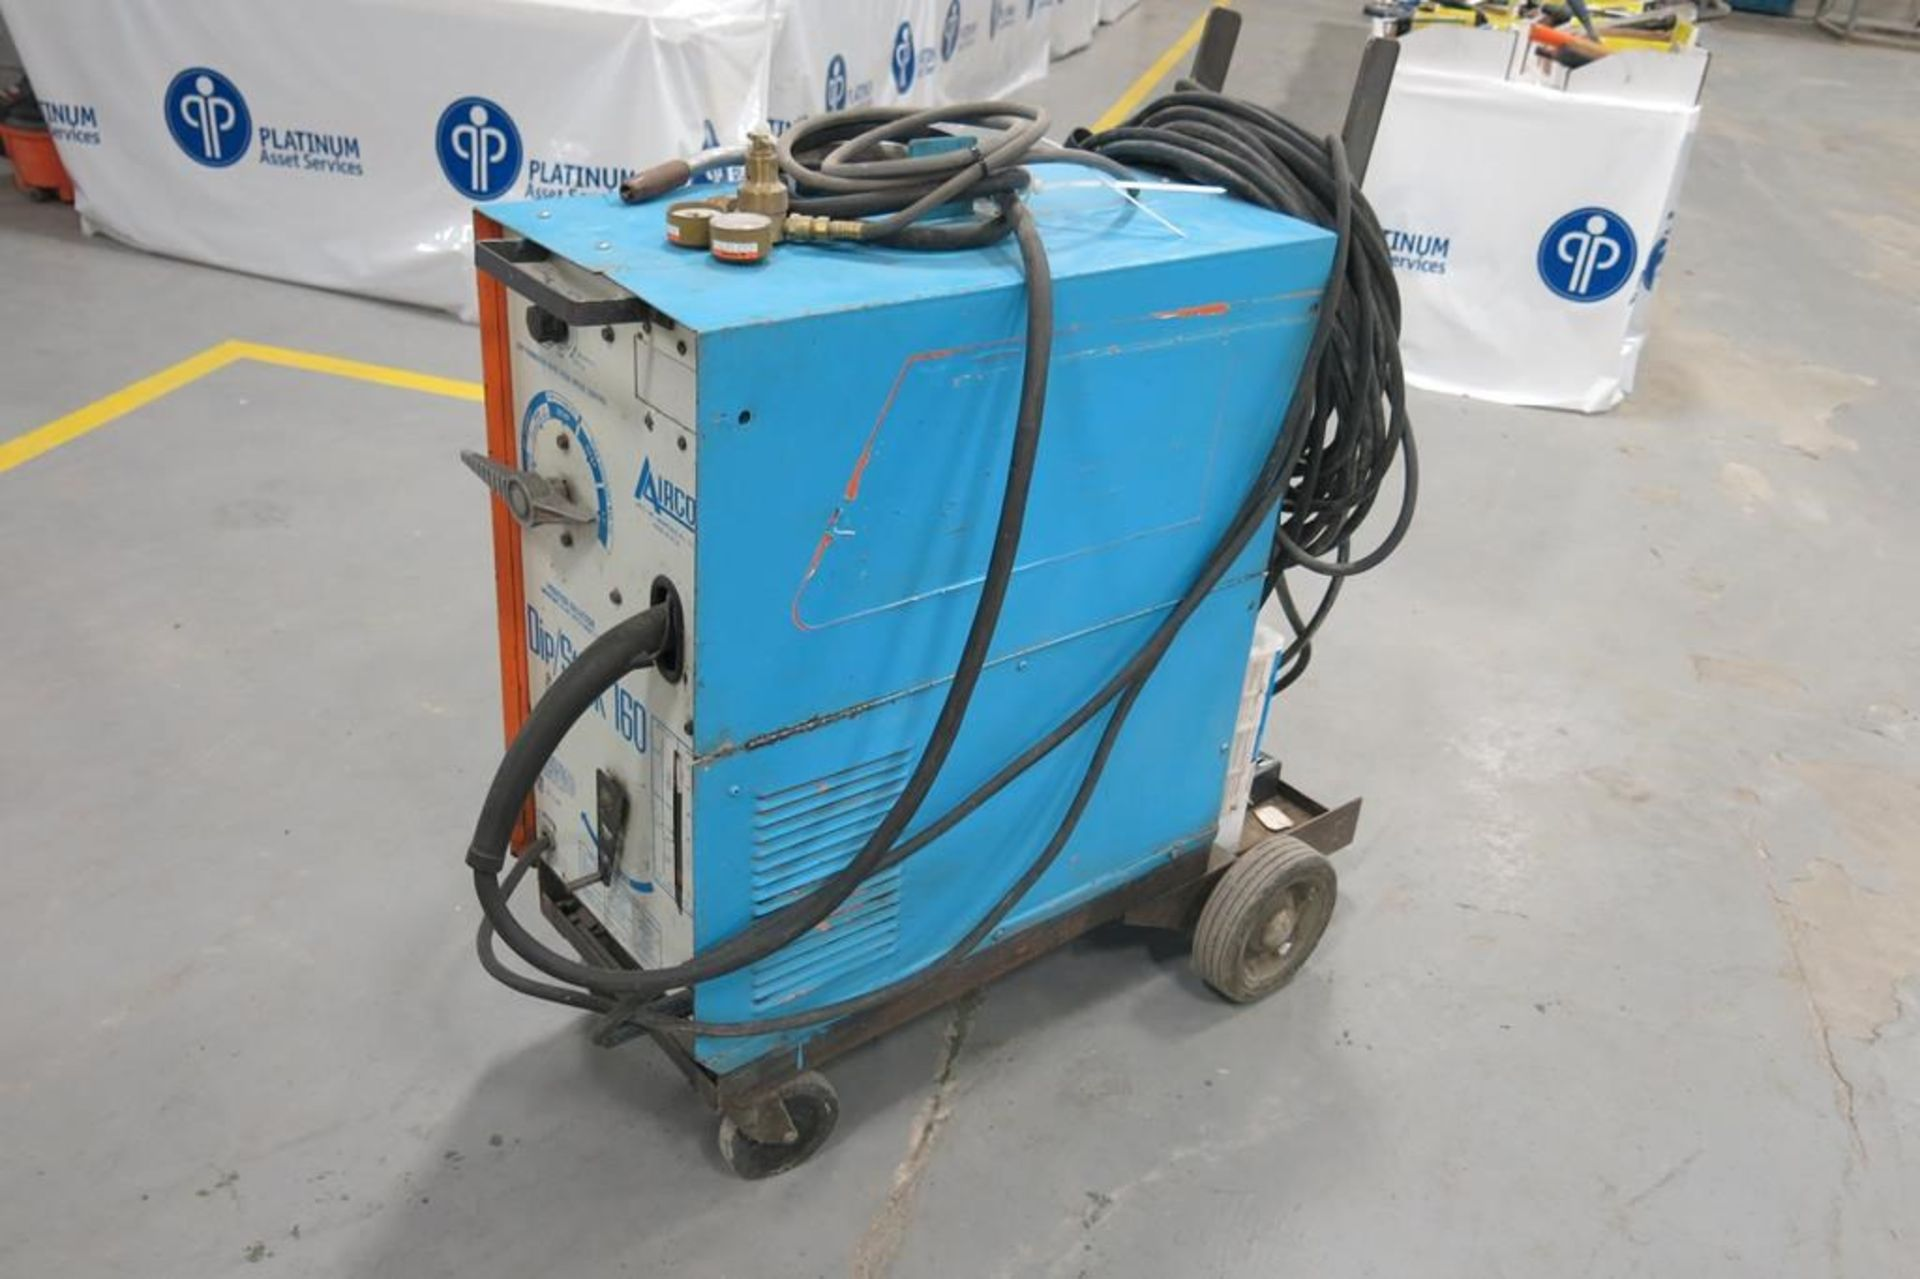 Lot 50A - AIRCO, 200 AMP, ARC WELDER WITH MIG WIRE FEED ATTACHMENT, 220 VAC, SINGLE PHASE